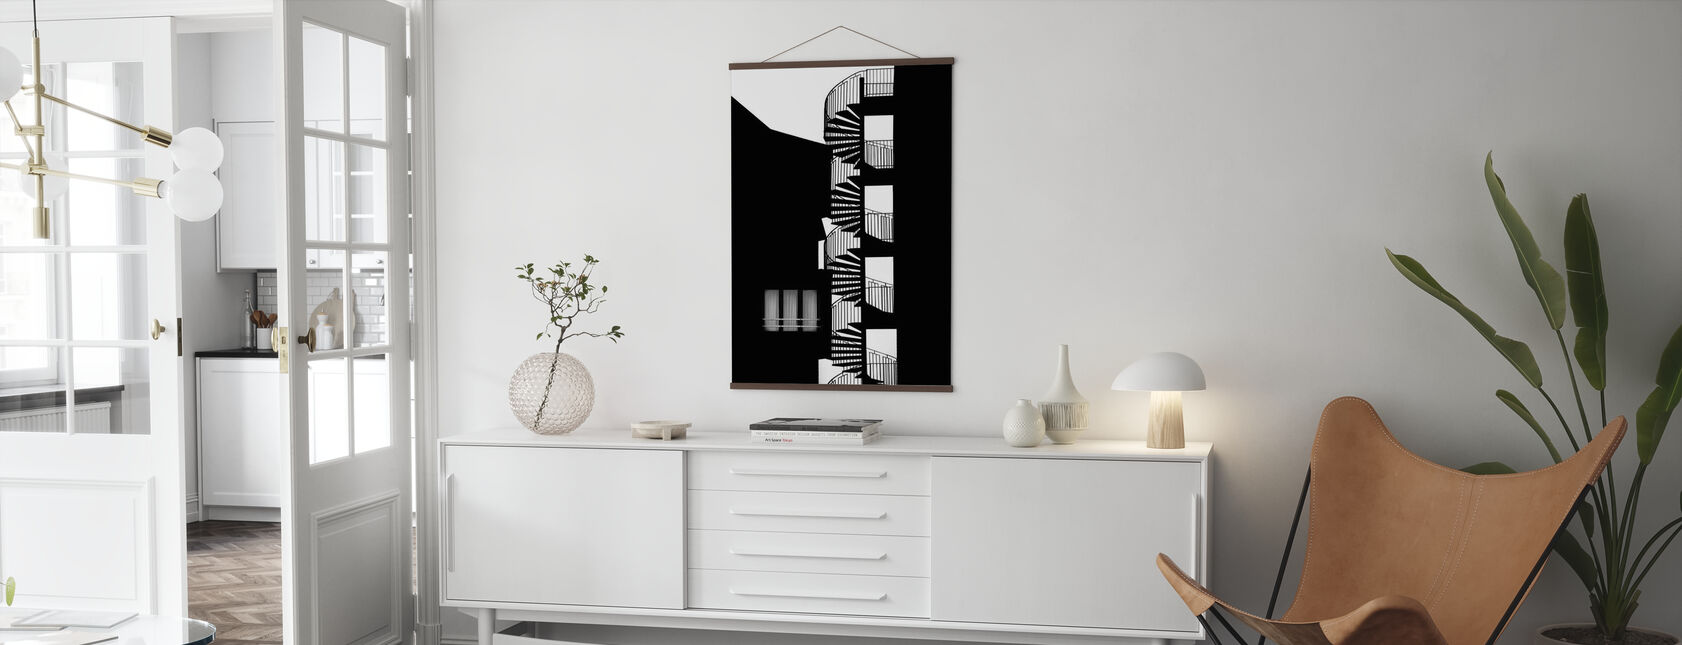 Silhouette - Poster - Living Room